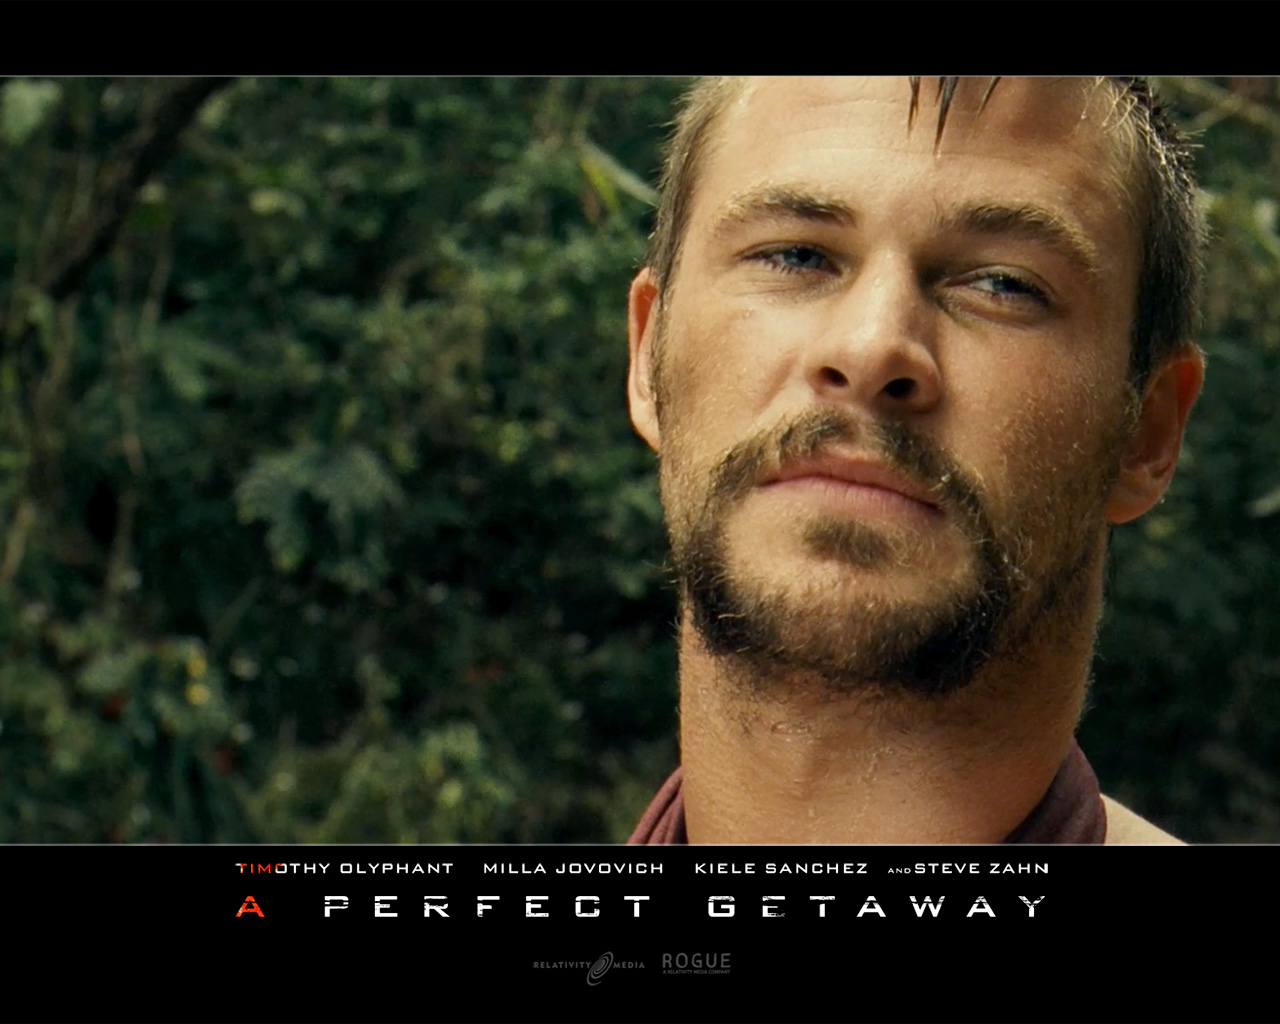 http://4.bp.blogspot.com/-mojjk63drxQ/TcFzQoSqrSI/AAAAAAAAF2k/ziXm15UYd5E/s1600/Chris_Hemsworth_in_A_Perfect_Getaway_Wallpaper_3_800.jpg